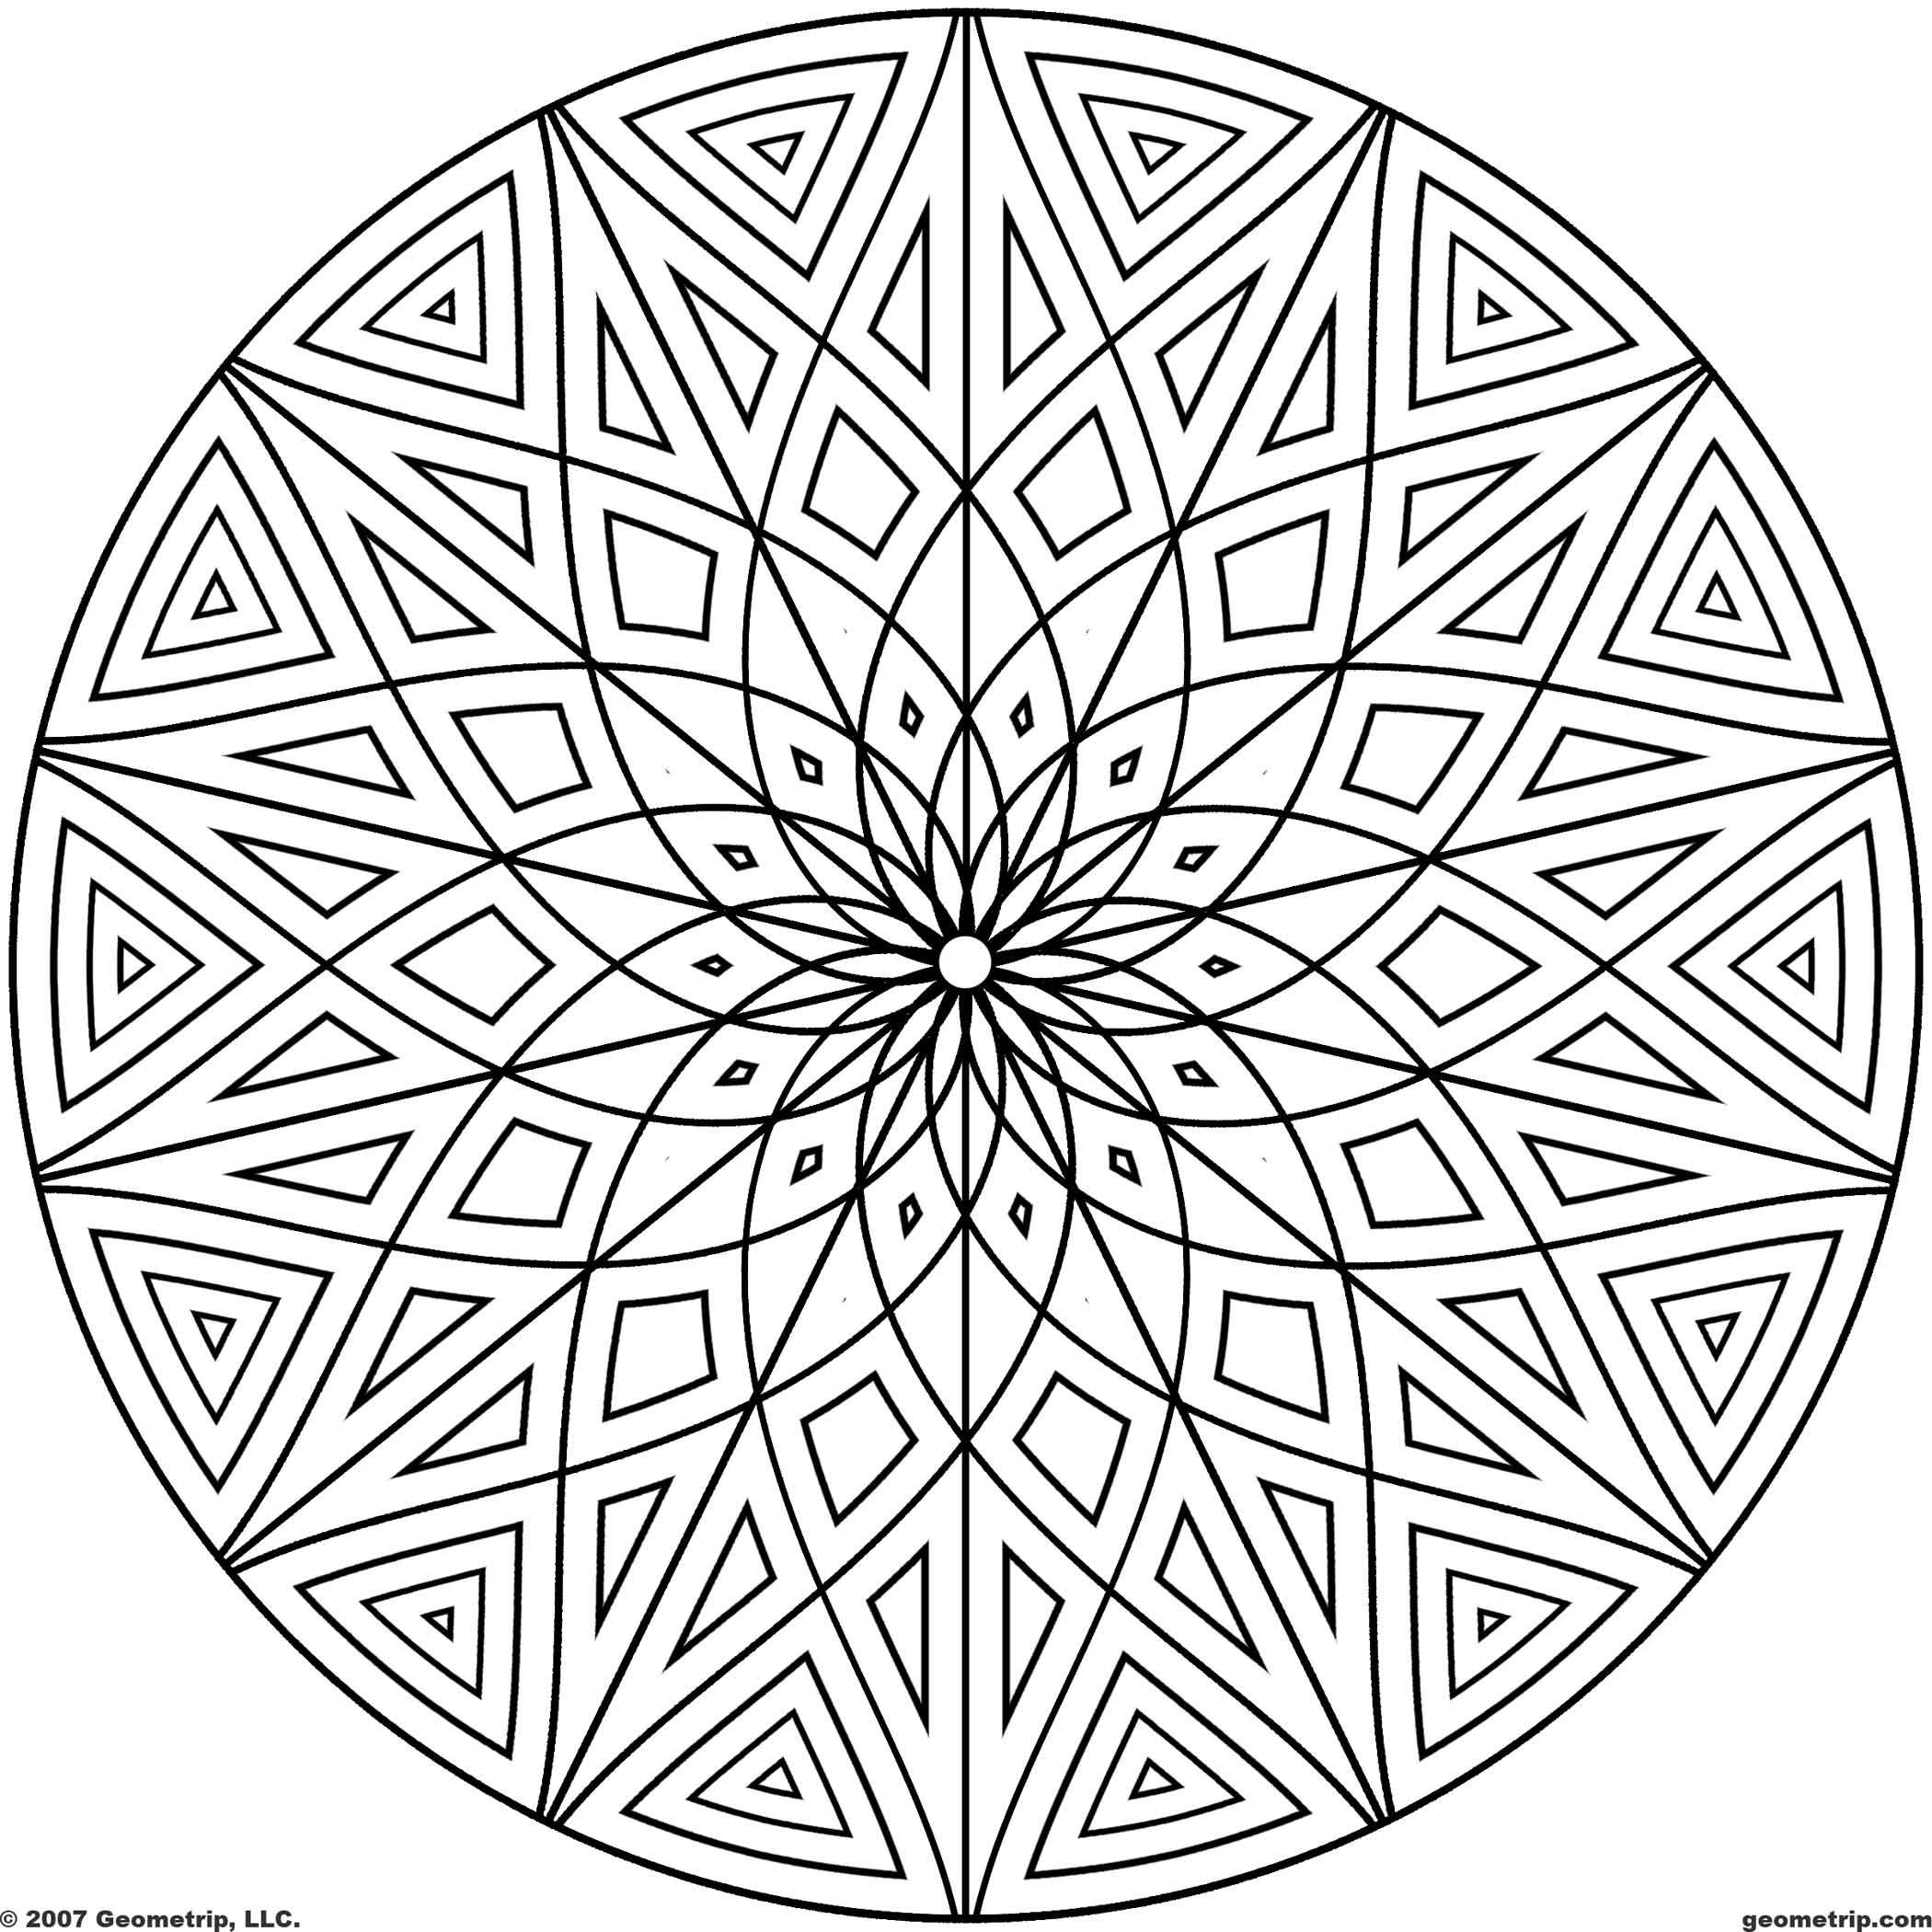 Http Geometrip Com Images Designs Circles Set1 Jpg Large Geometrip Circles Set1 Sym14 Jpg Geometric Coloring Pages Cool Coloring Pages Shape Coloring Pages